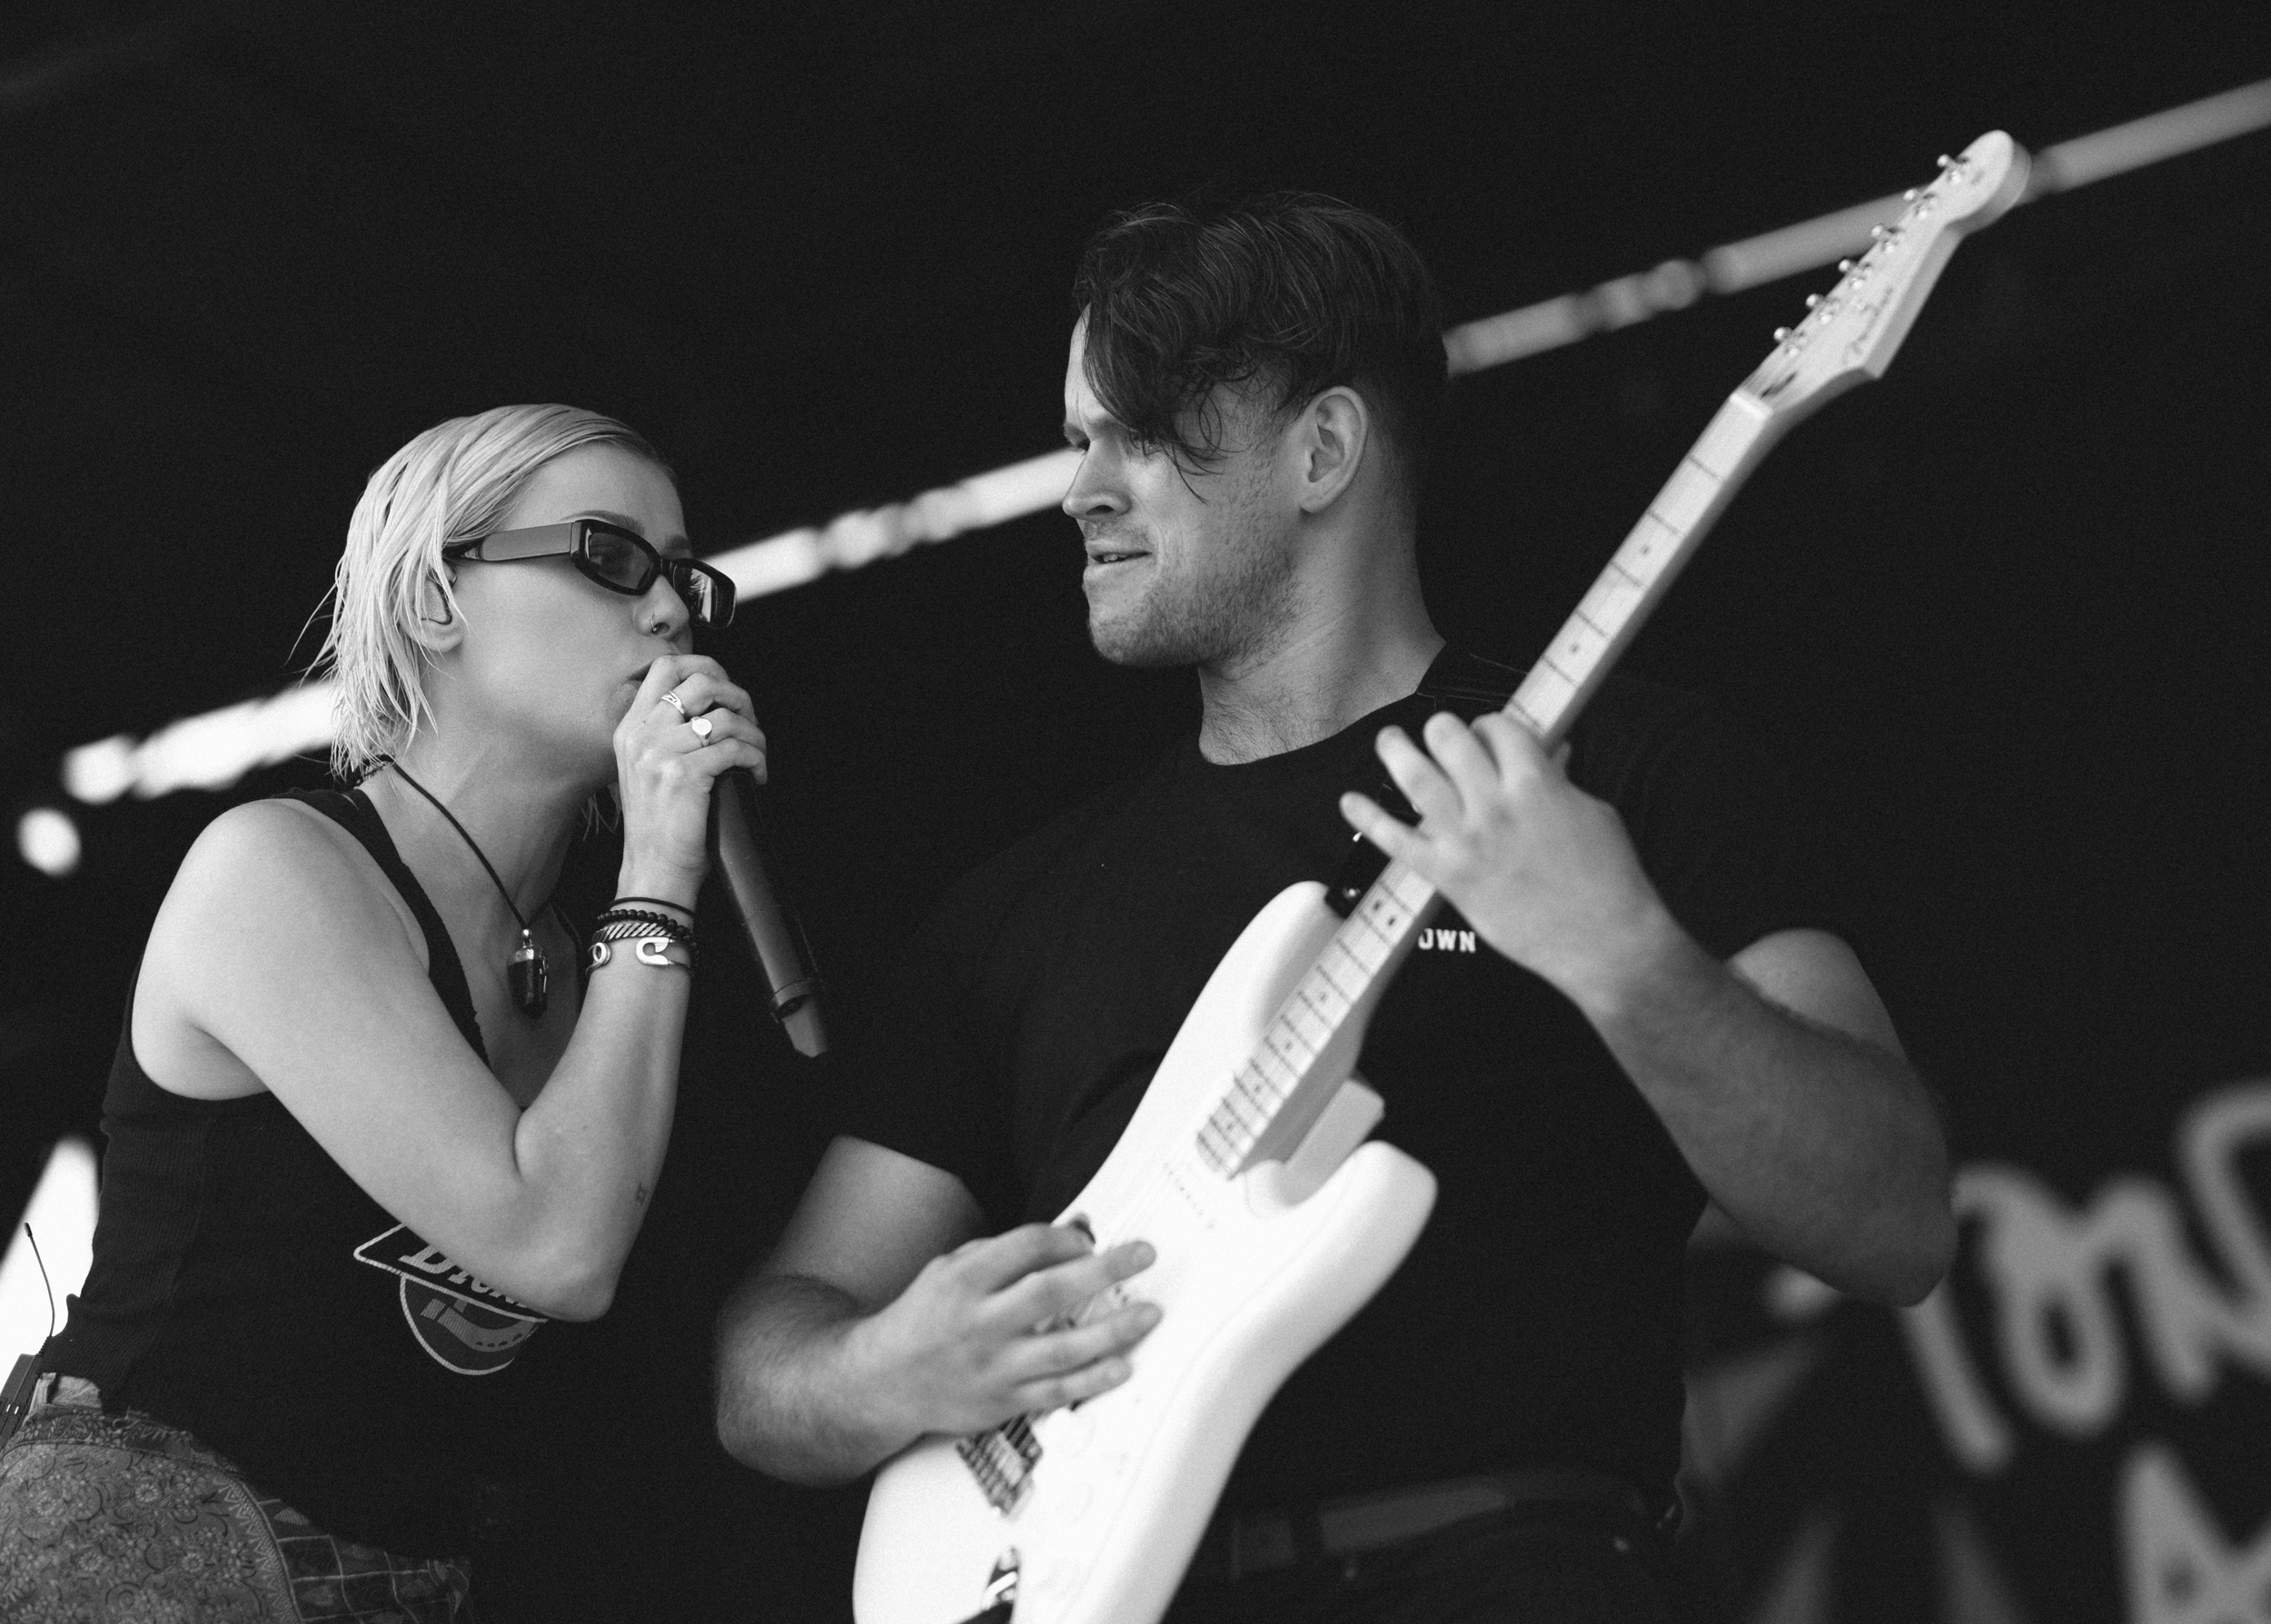 Jenna and Jake of Tonight Alive